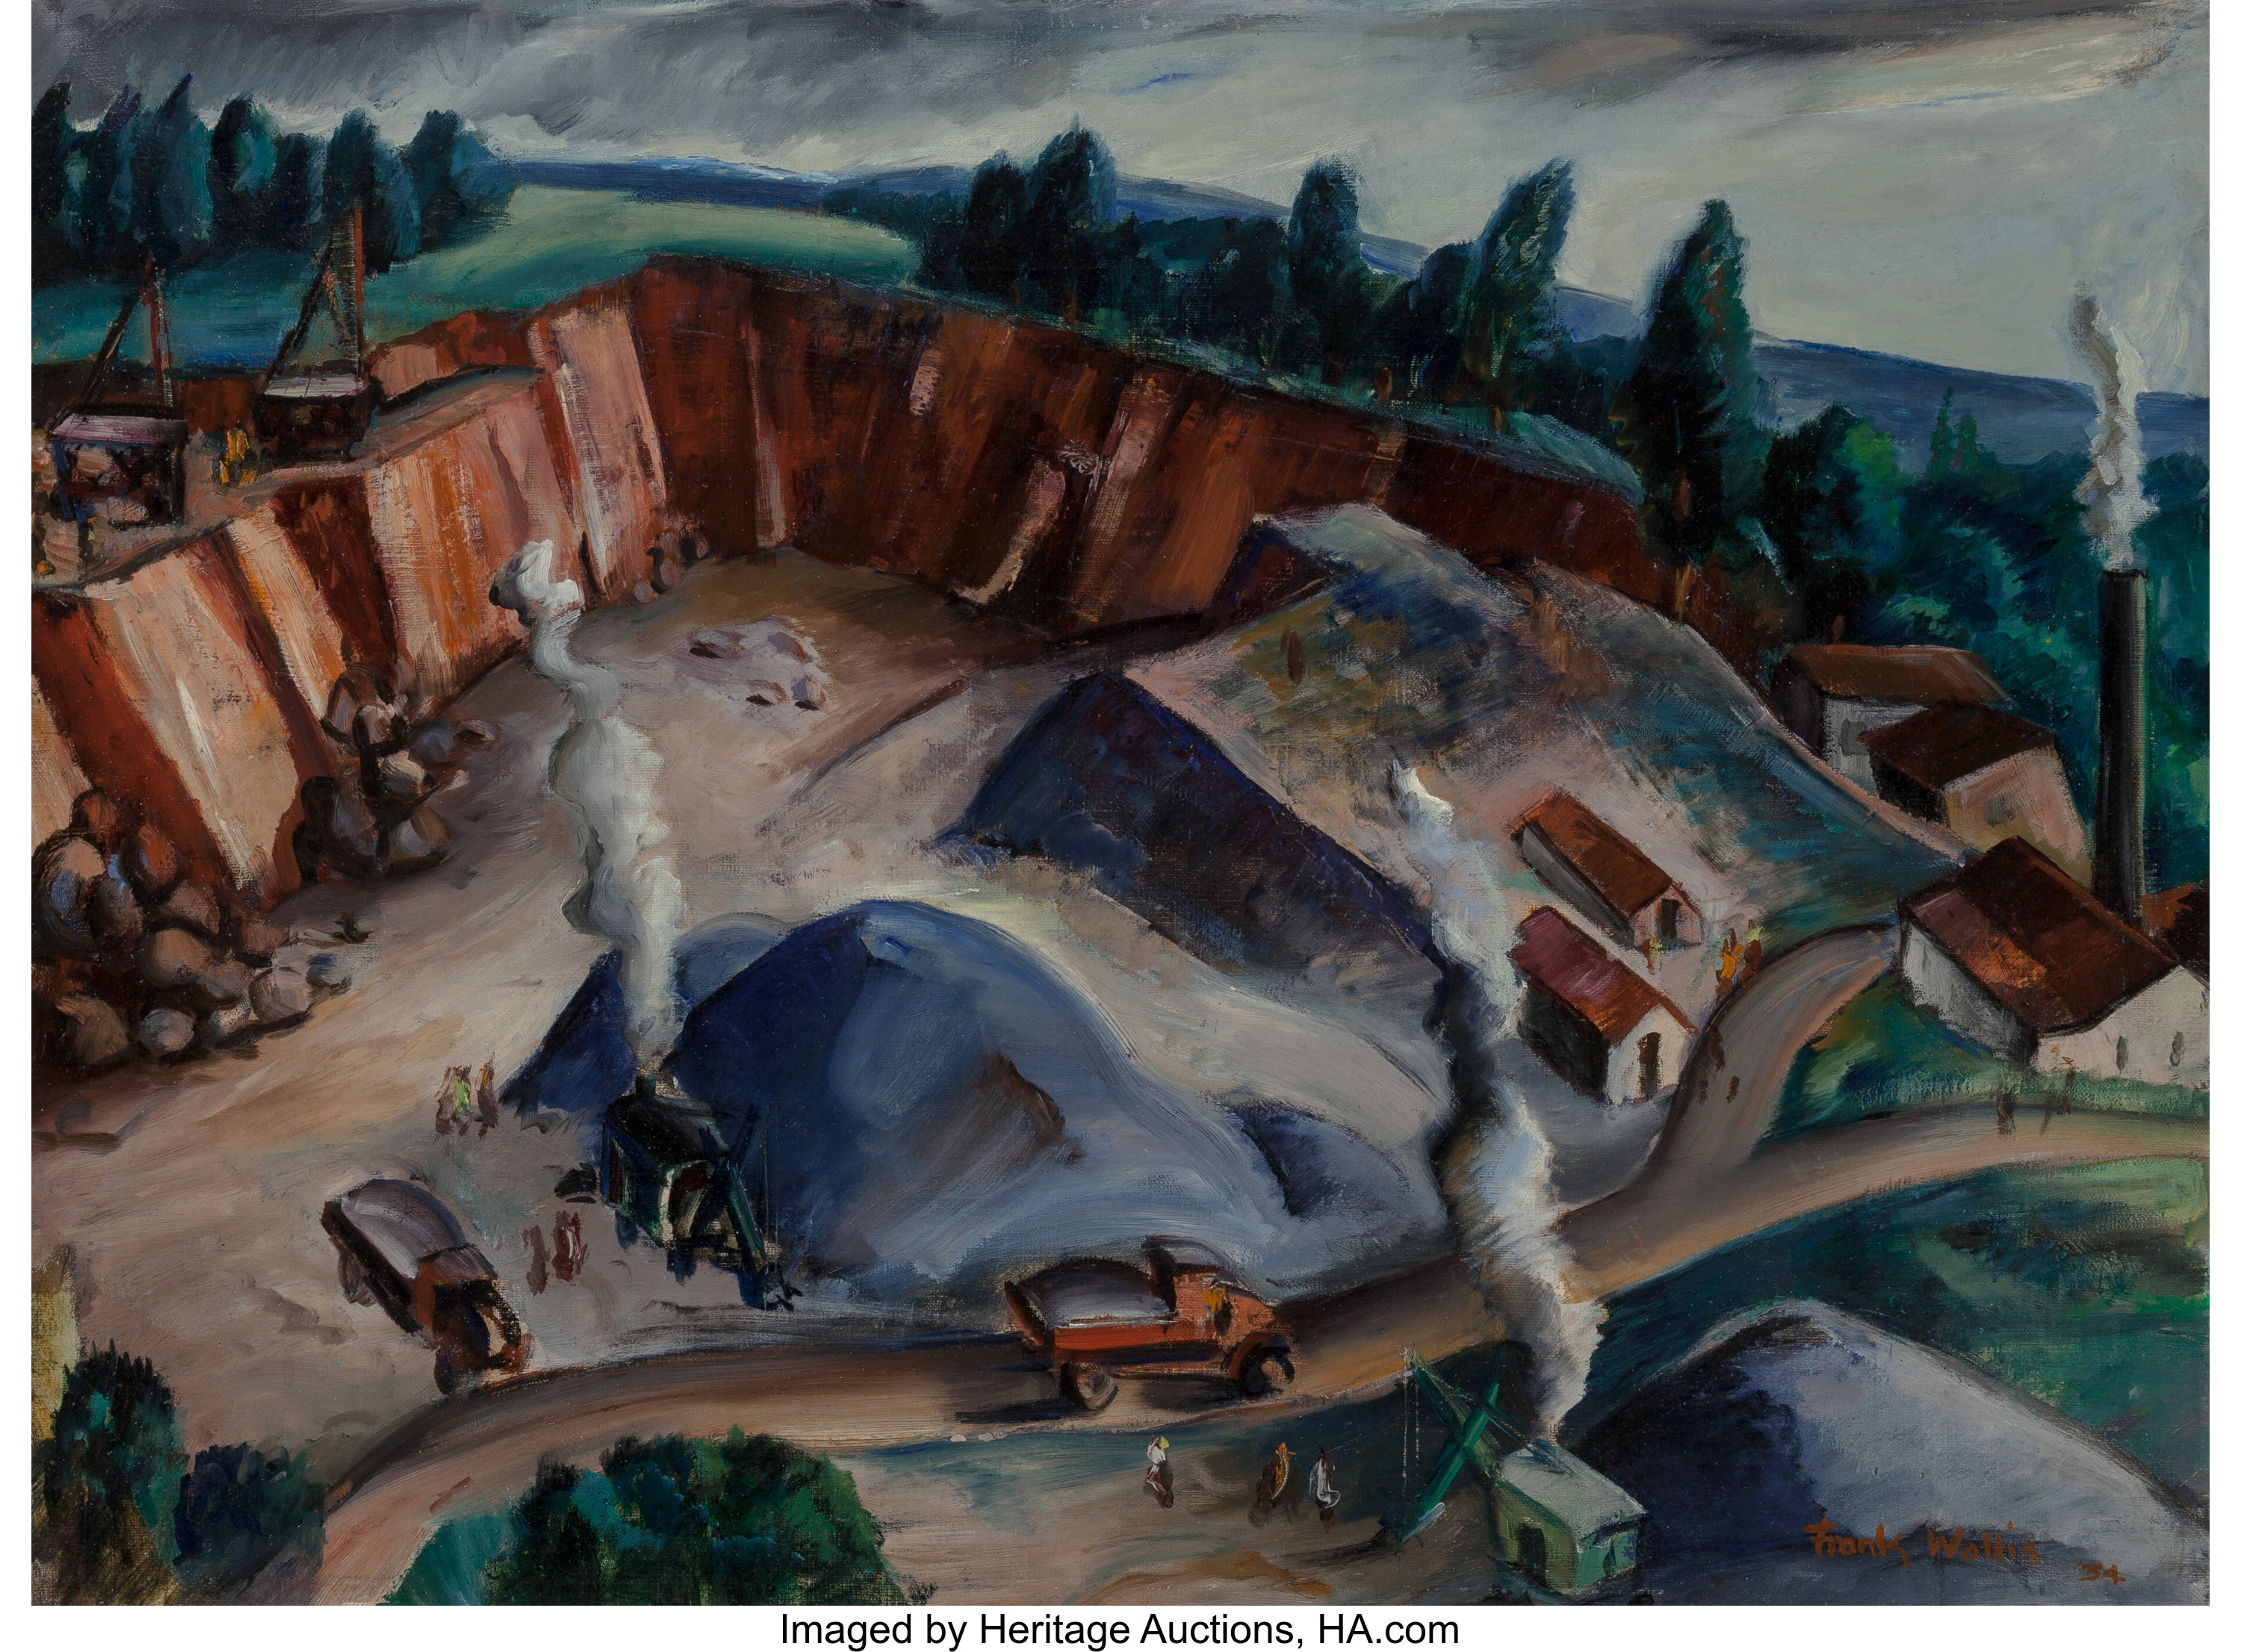 Frank Wallis American 20th Century Industrial Landscape 1934 Lot 62252 Heritage Auctions